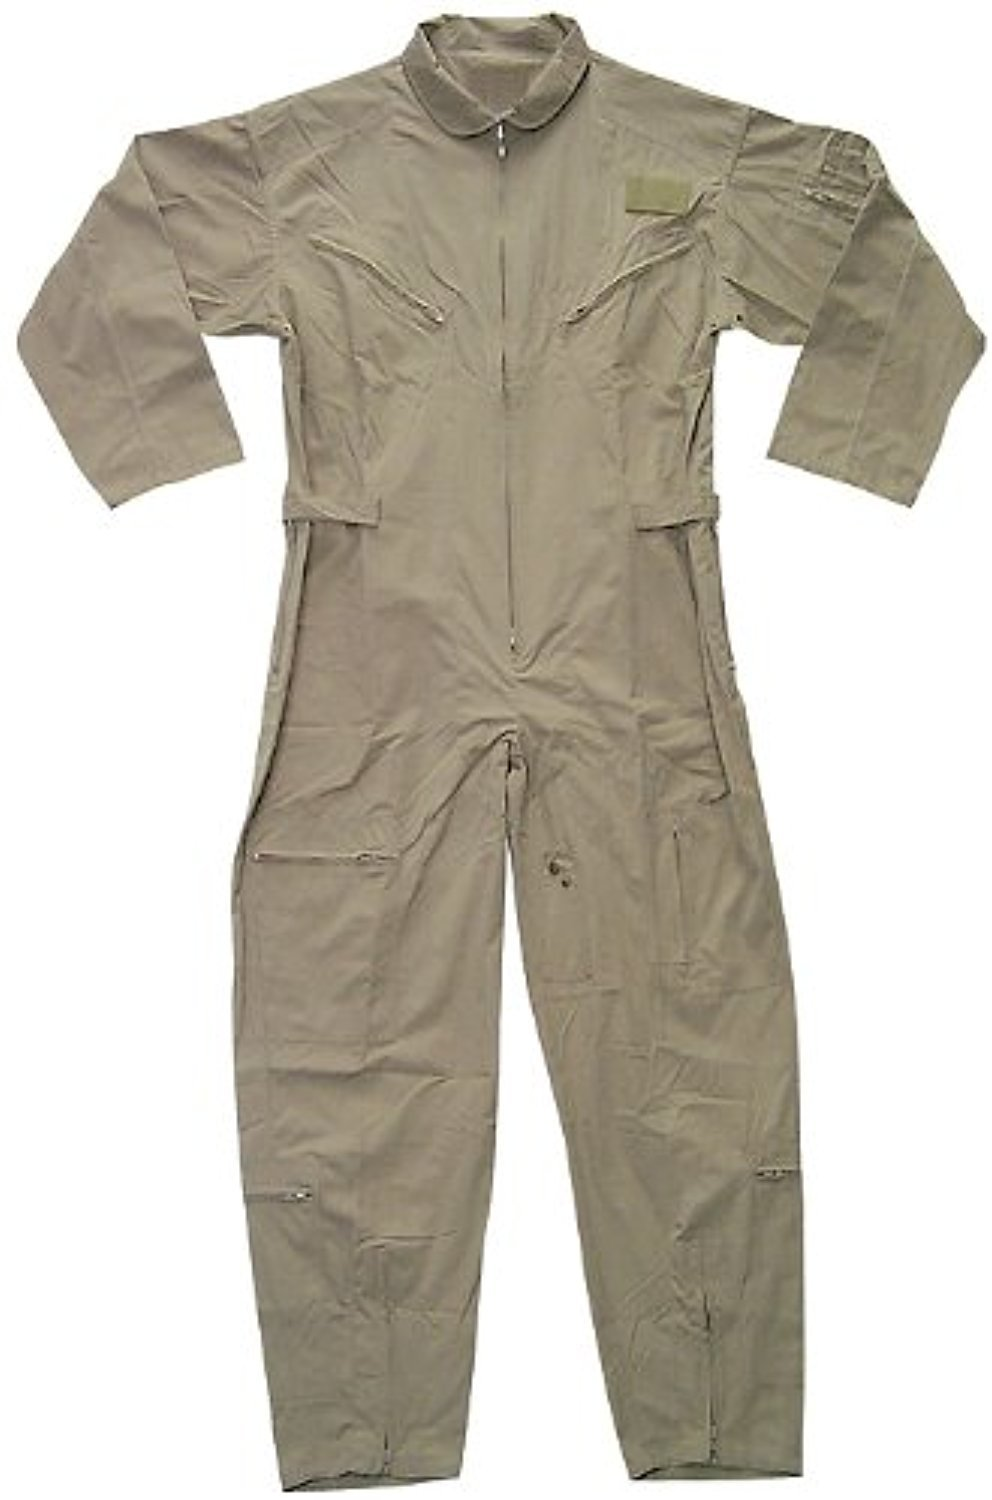 US Air Force Style Military Camouflage Flight Suit Coveralls (Khaki, X-Large)